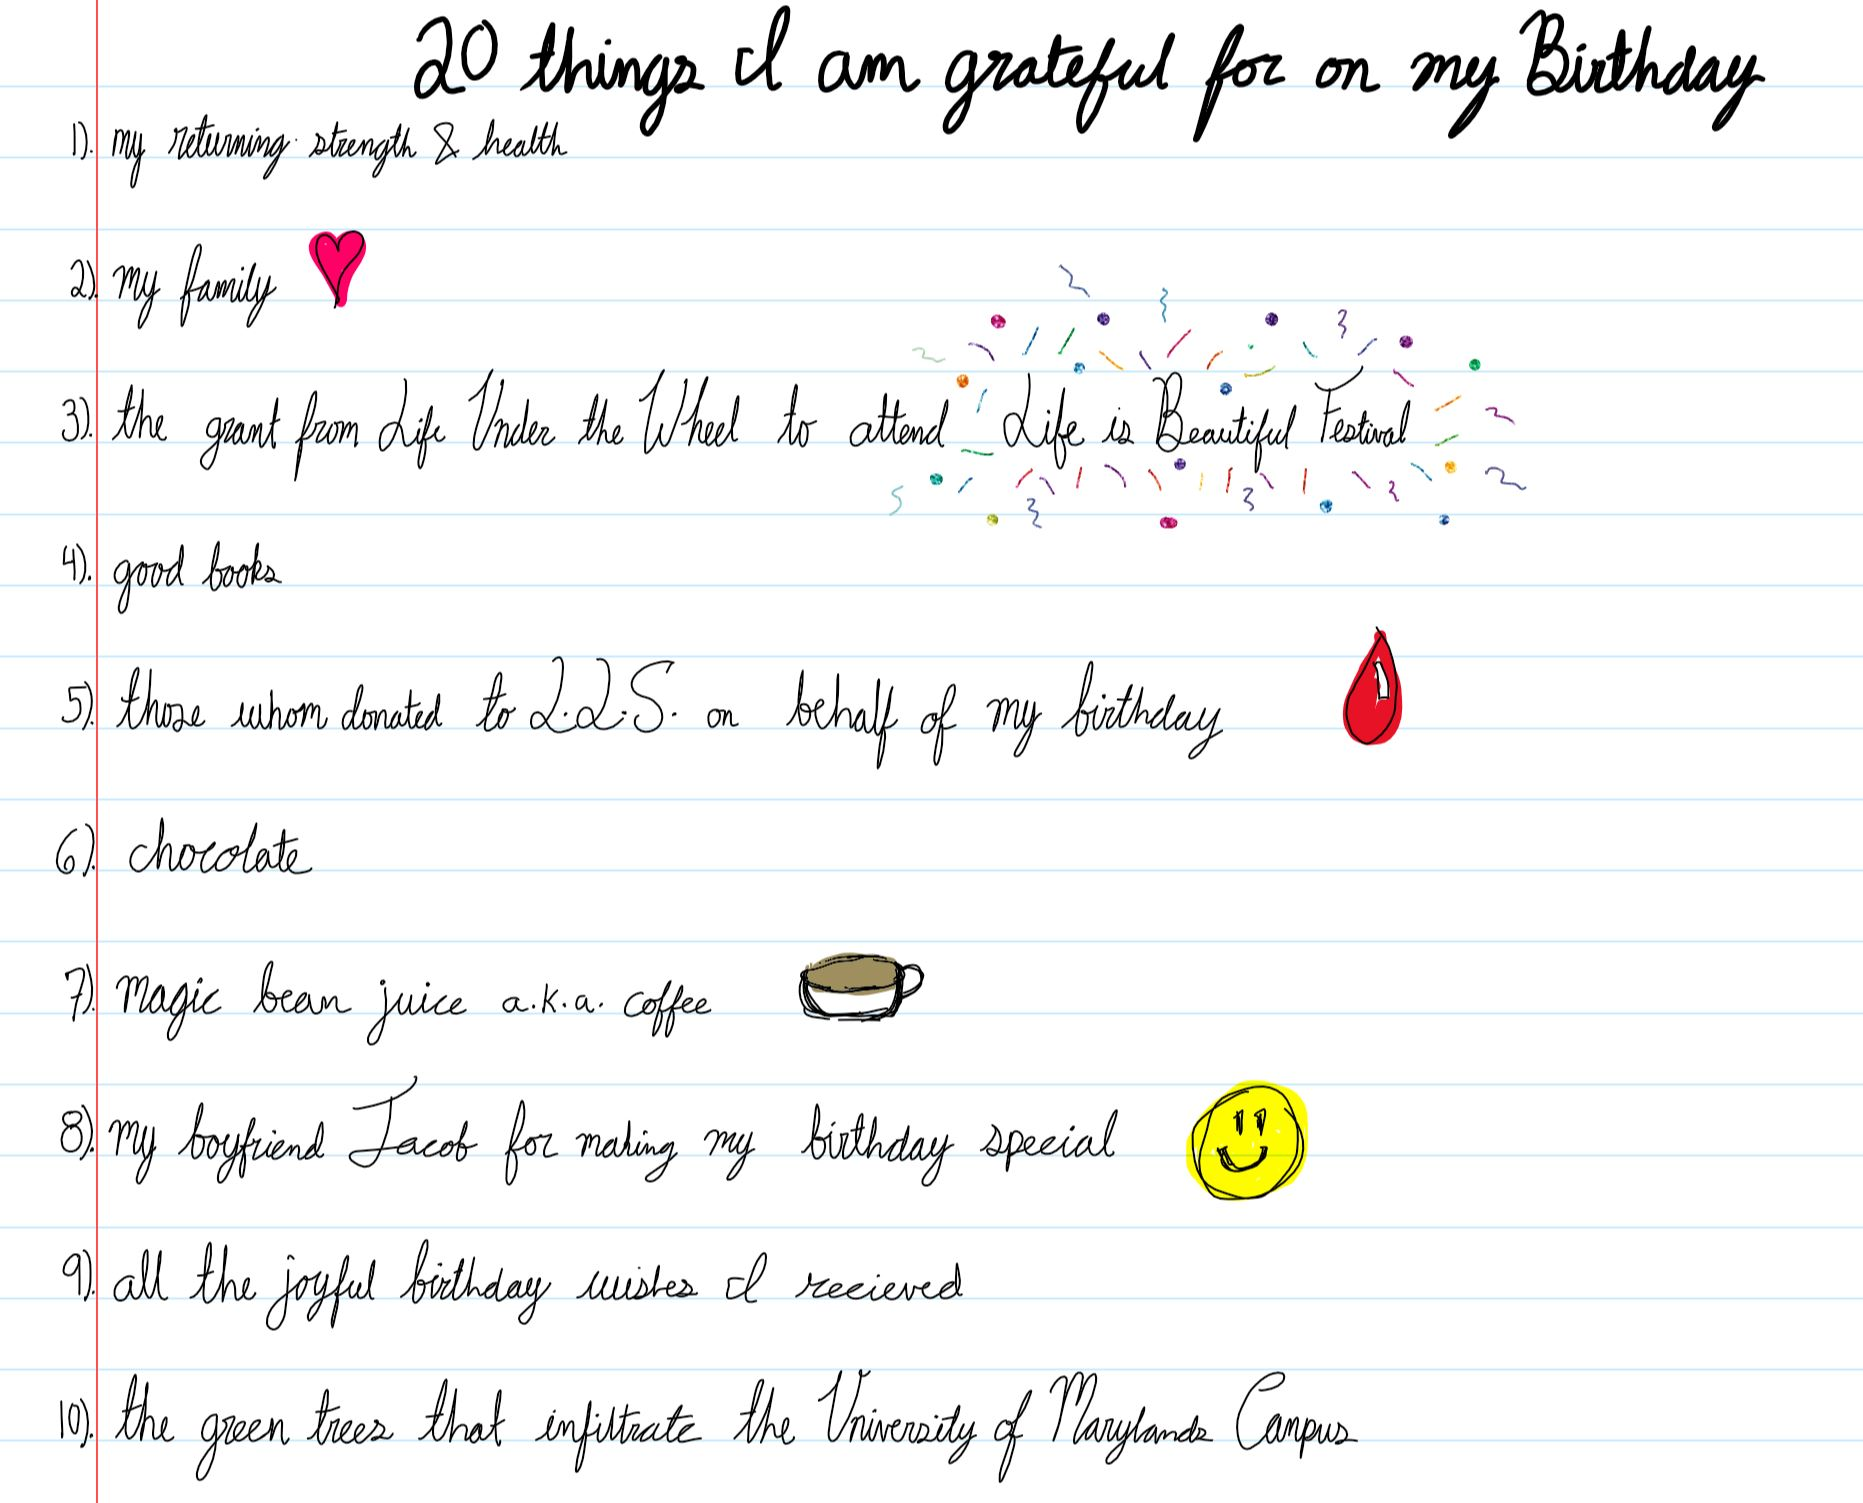 20 Things I am Grateful For on My Birthday